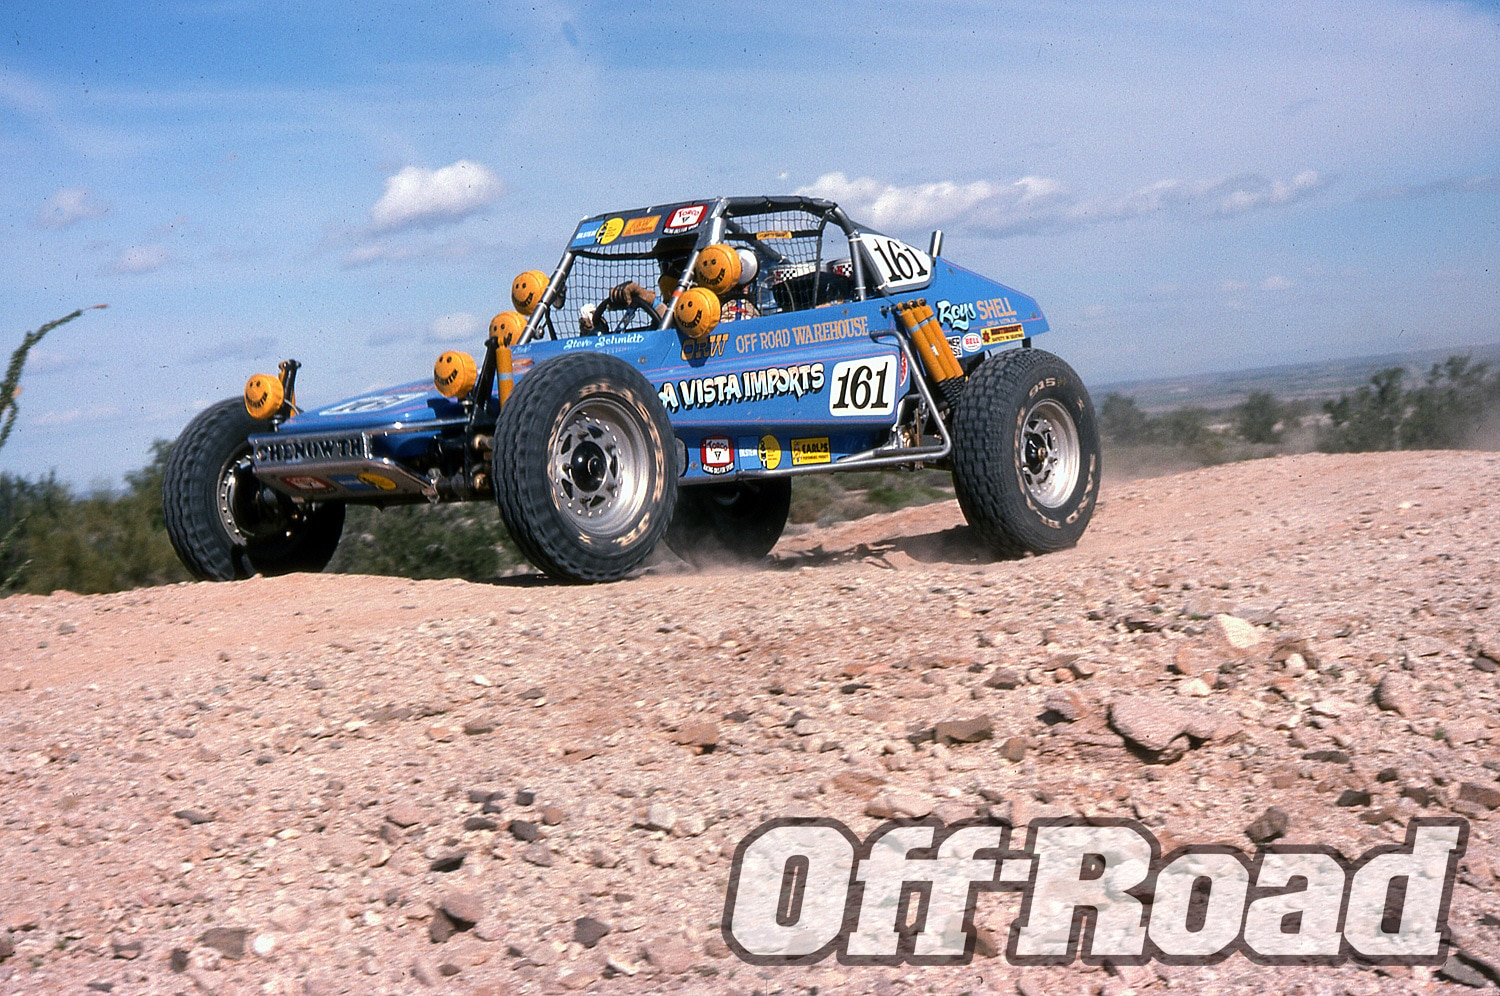 092211or 02+chenowth 1000 class 3+2011 norra mexican 1000